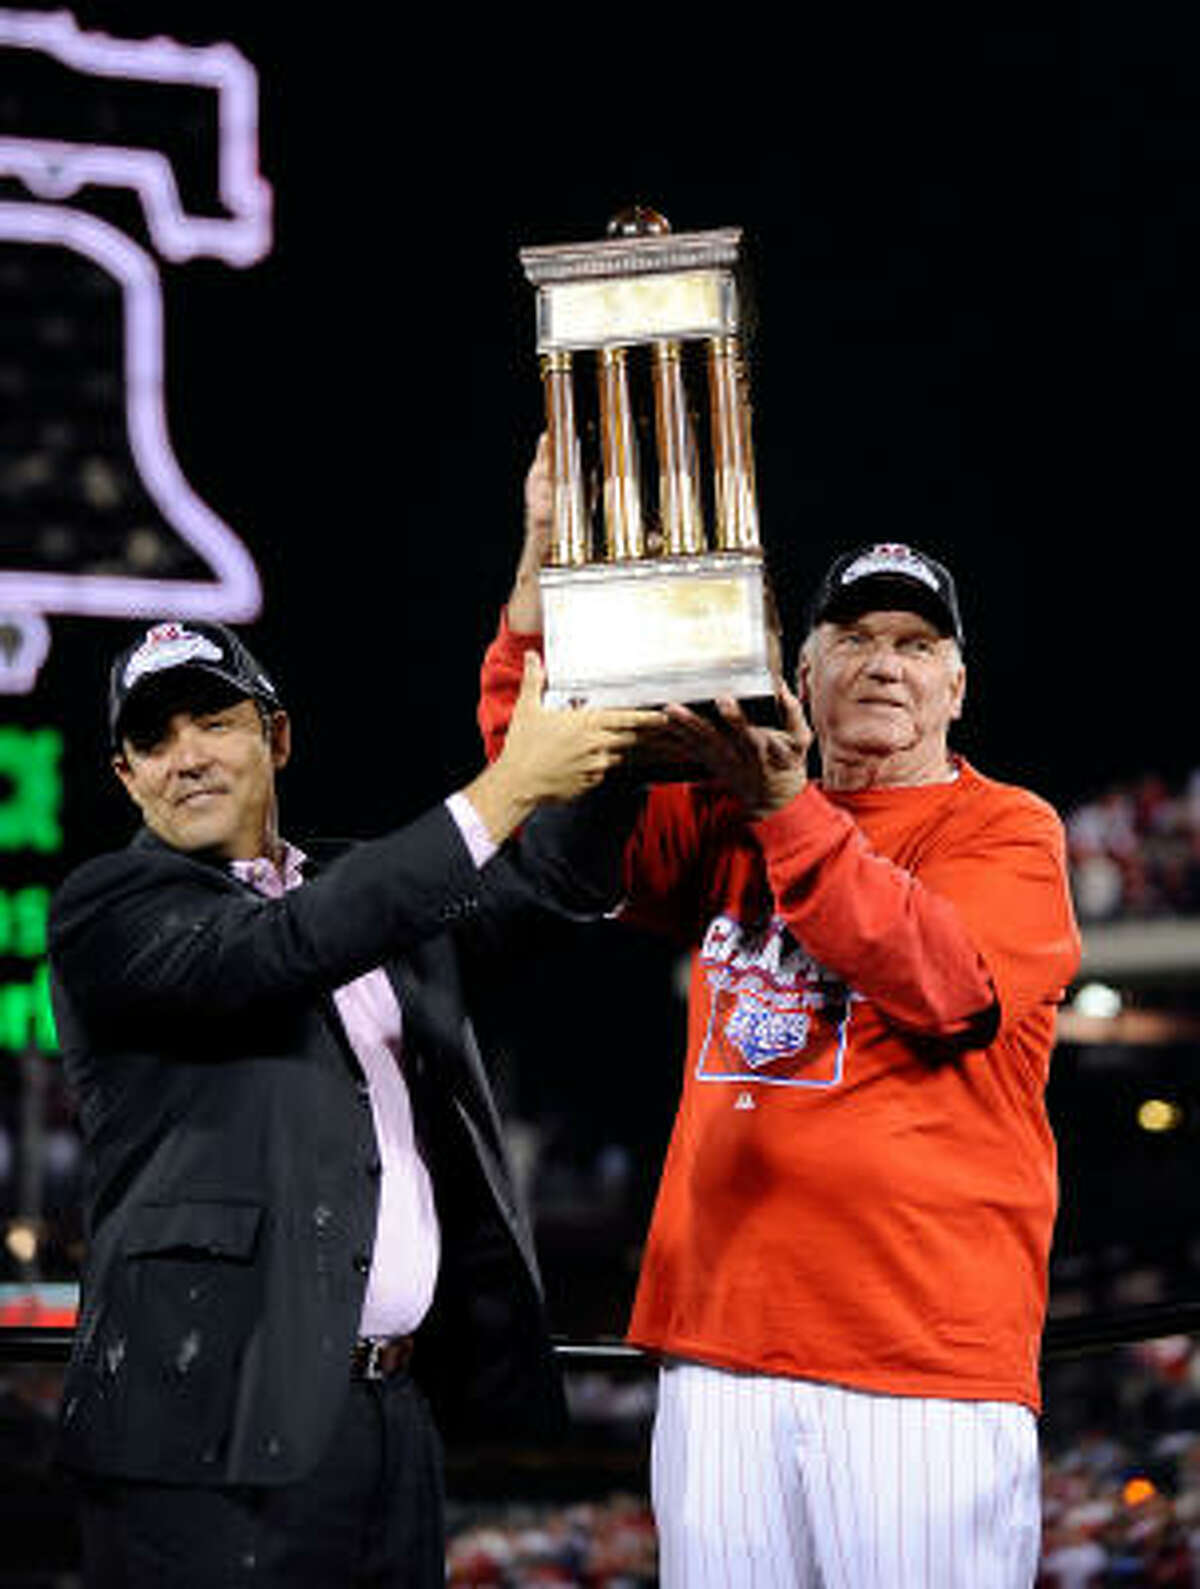 Phillies manager Charlie Manuel of the holds the National League trophy with GM Ruben Amaro Jr. as they celebrate defeating the Dodgers 10-4 to advance to the World Series.